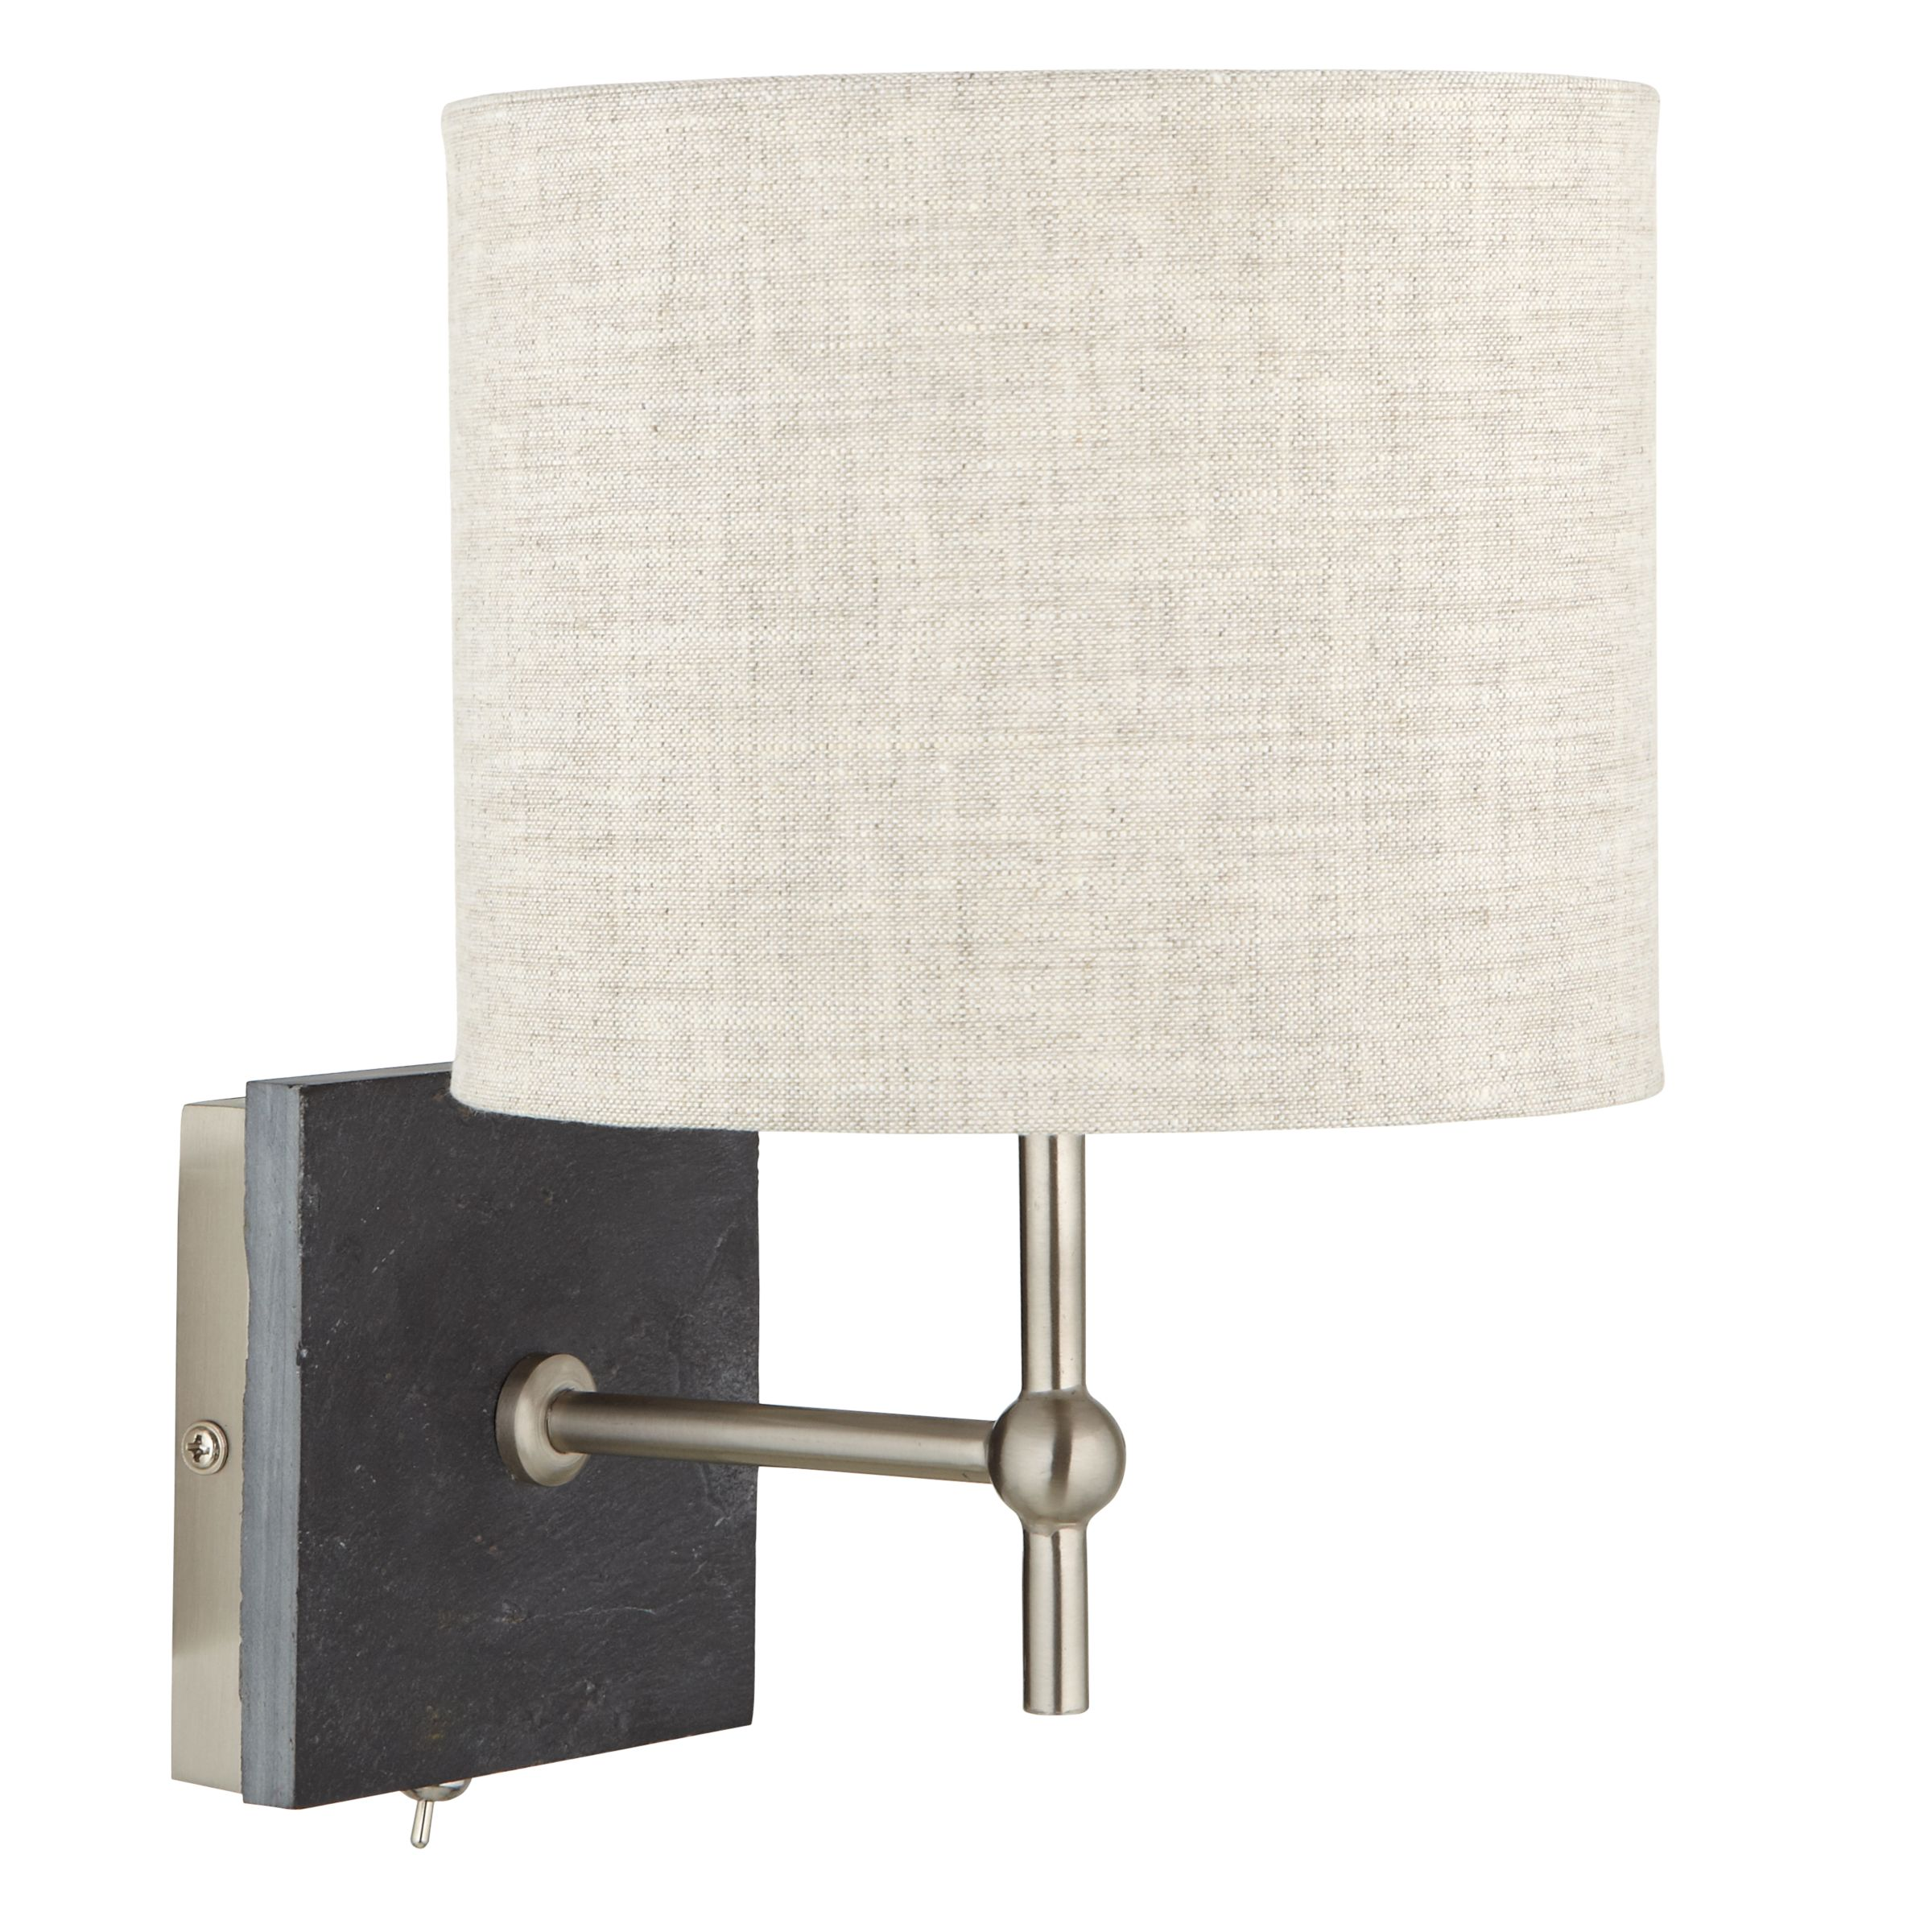 Wall Mounted Lamps John Lewis : Buy John Lewis Jack Wall Light, Slate John Lewis